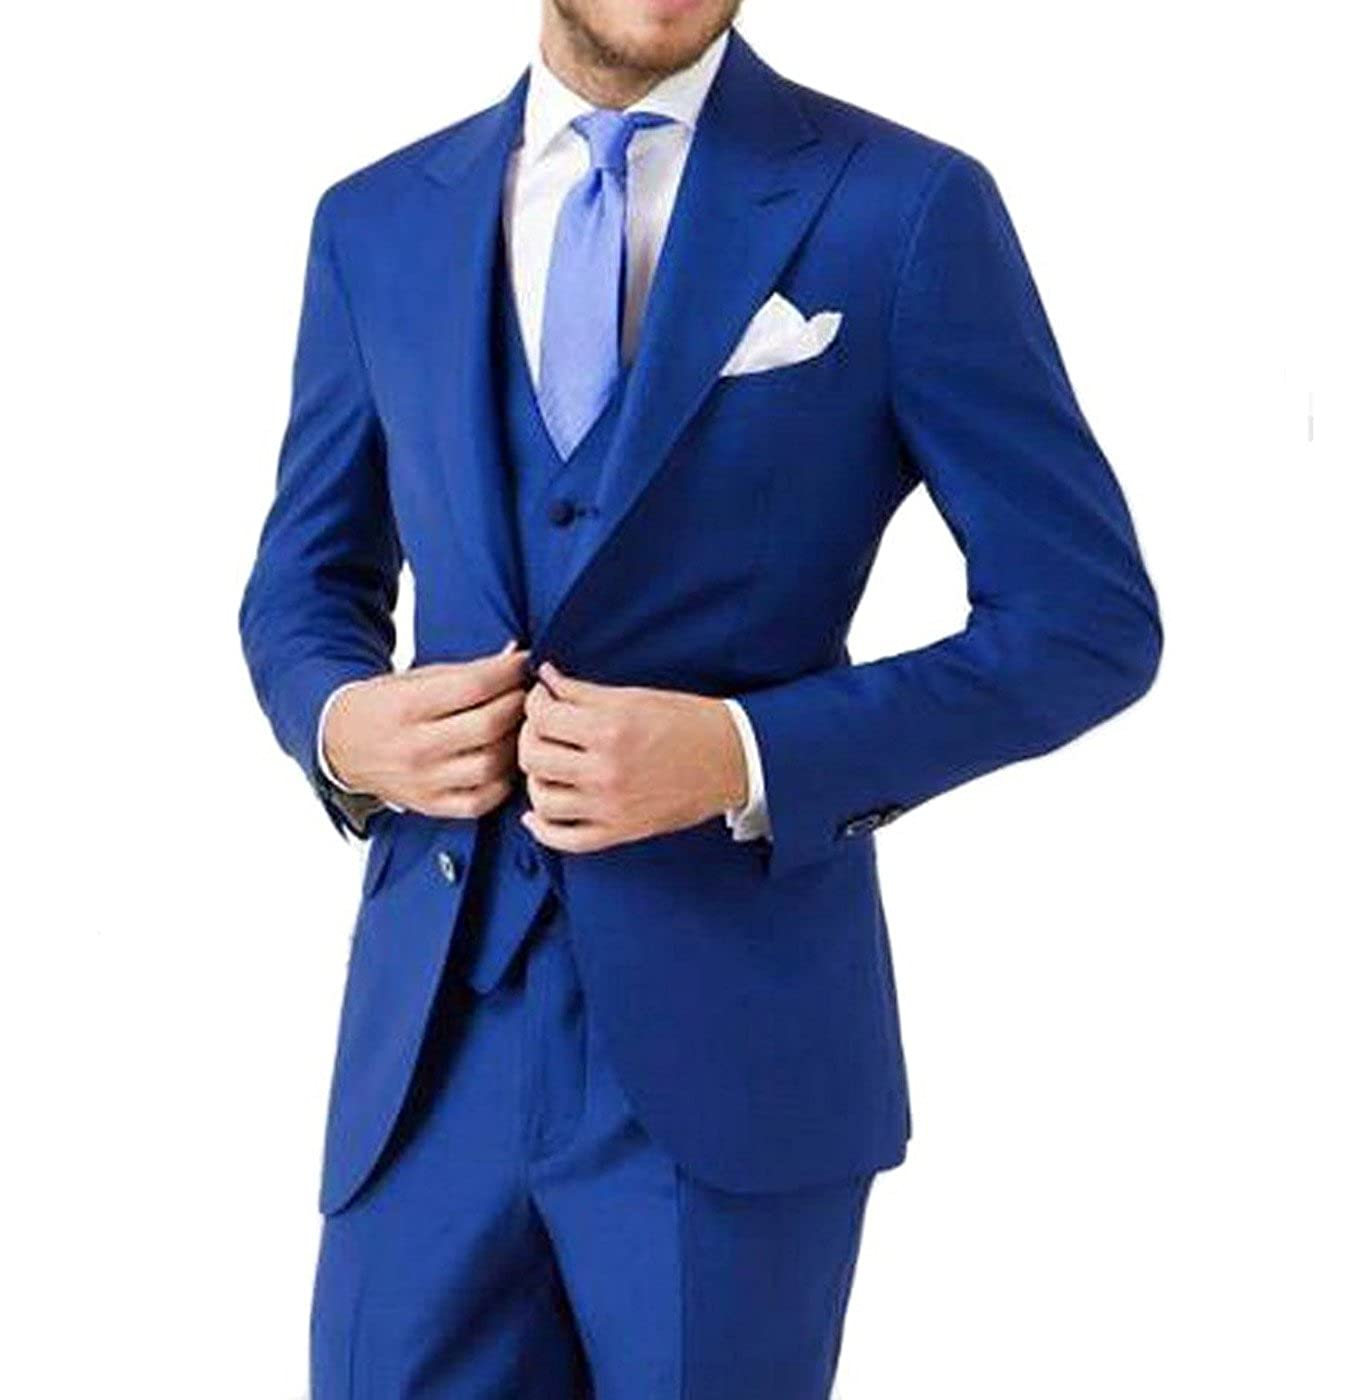 Fitty Lell Mens Suit Royal Blue 3 Piece Wedding Casual Groomsmen Suit